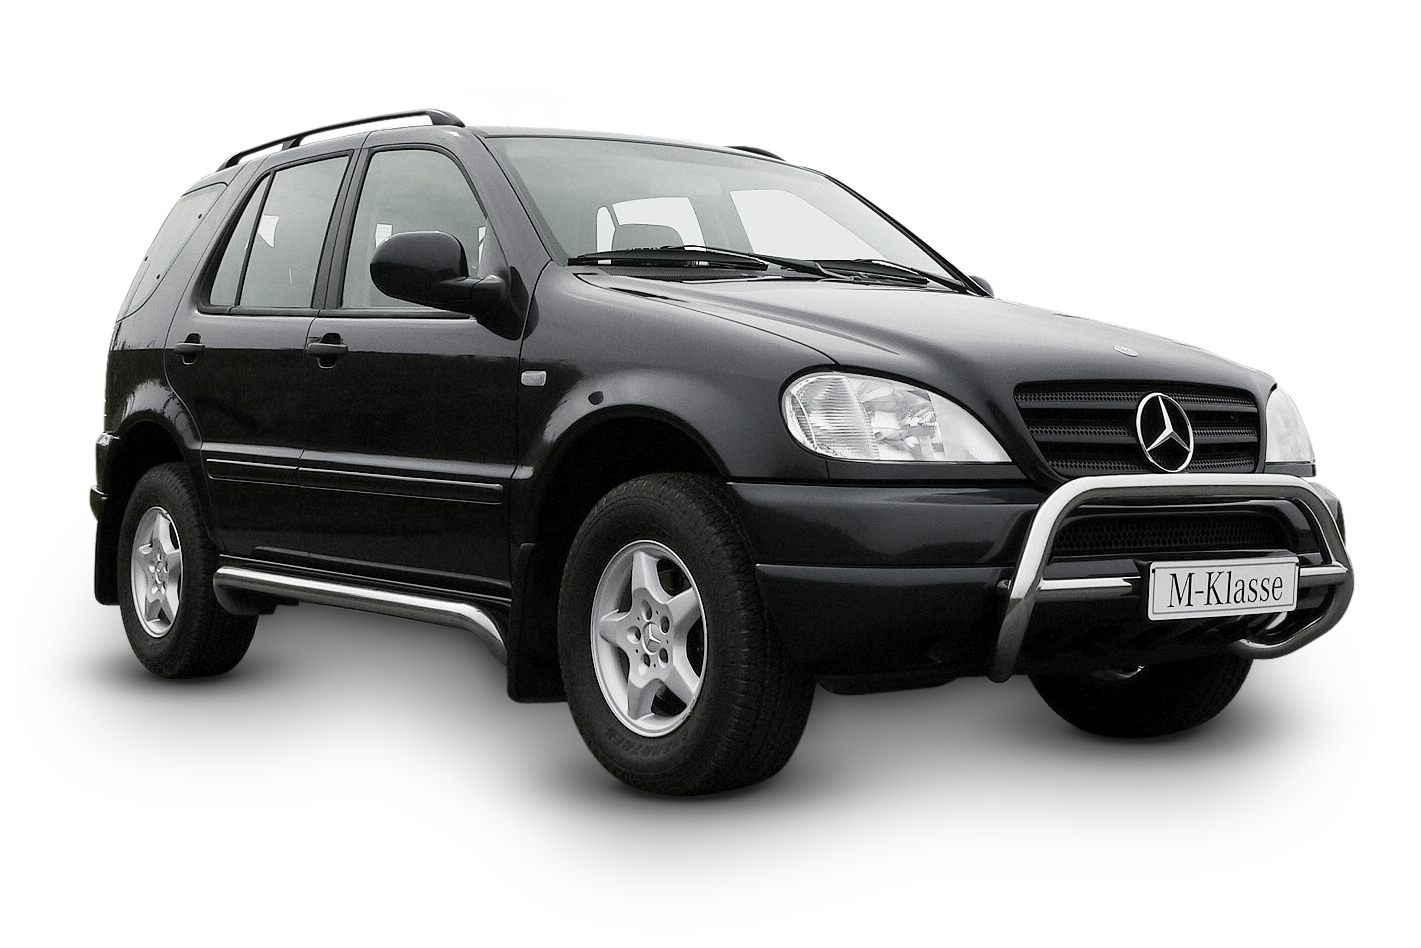 Mercedes ML350 (V6 Engine)